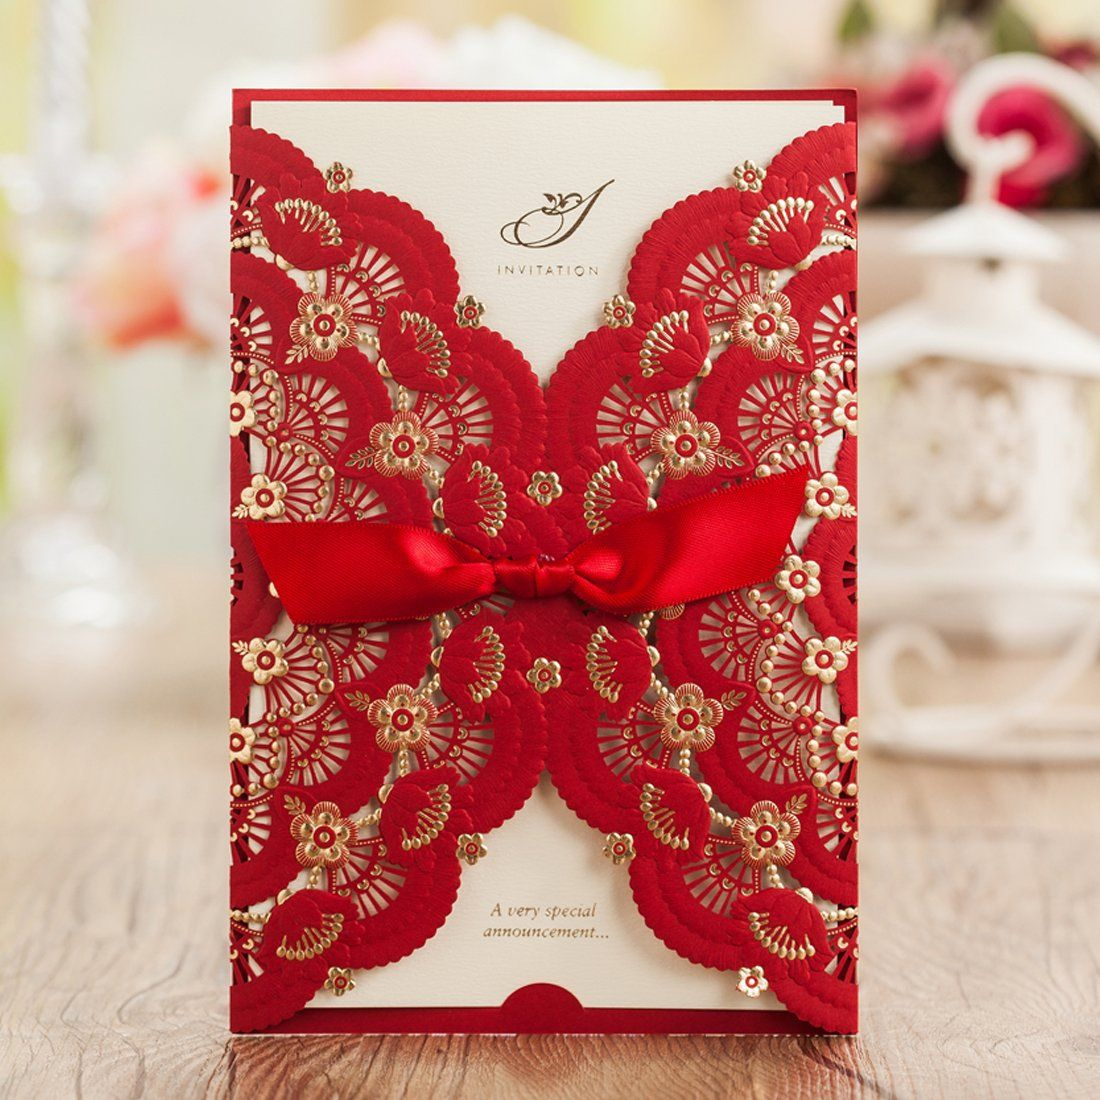 Affordable wedding dress designers list  Wishmade x Elegant Red Laser Cut Wedding Invitations Cards with